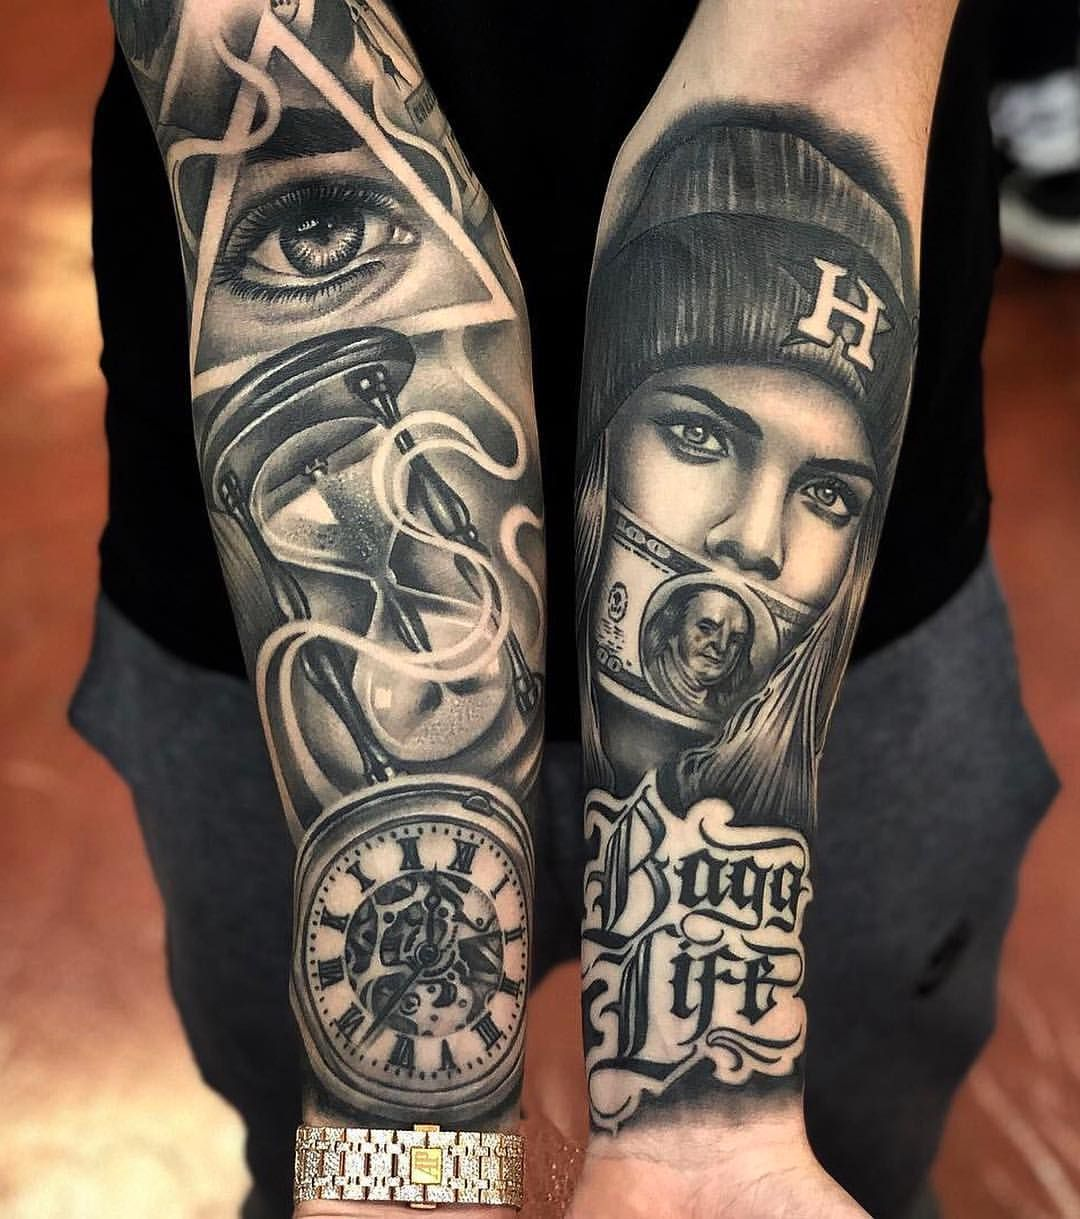 3 043 Me Gusta 8 Comentarios Best Tattoo Artist Best Tattoo Artist En Instagram Repost Best Tat Tattoo Artists Sleeve Tattoos Gangster Tattoos